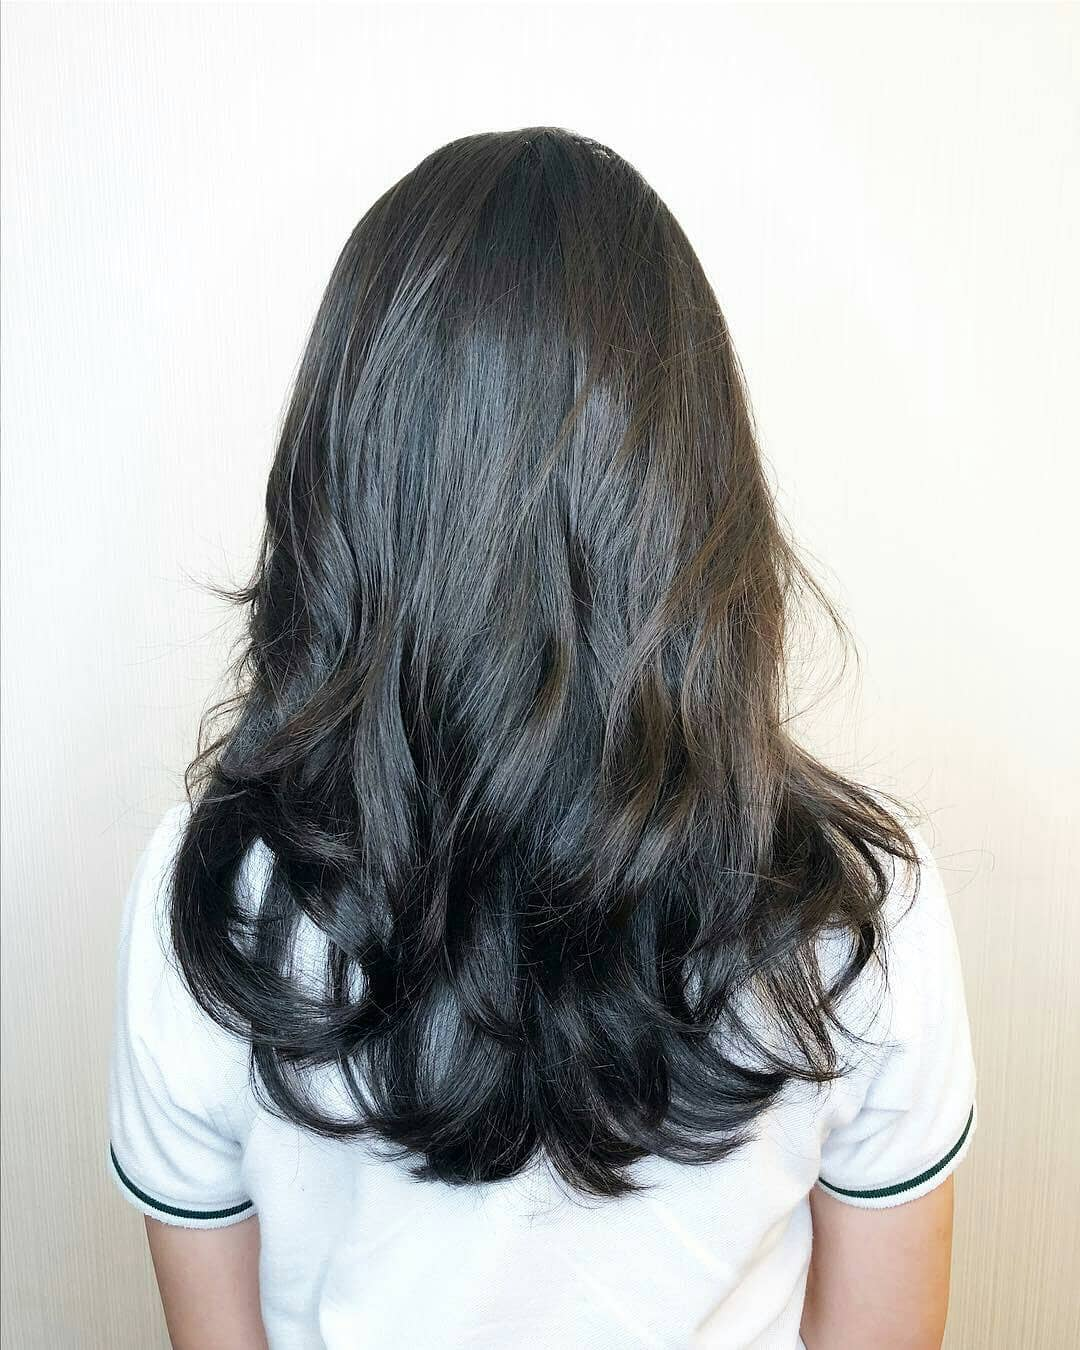 Layered Cut by Zinc Korean Salon to Conceal Thinning Hair